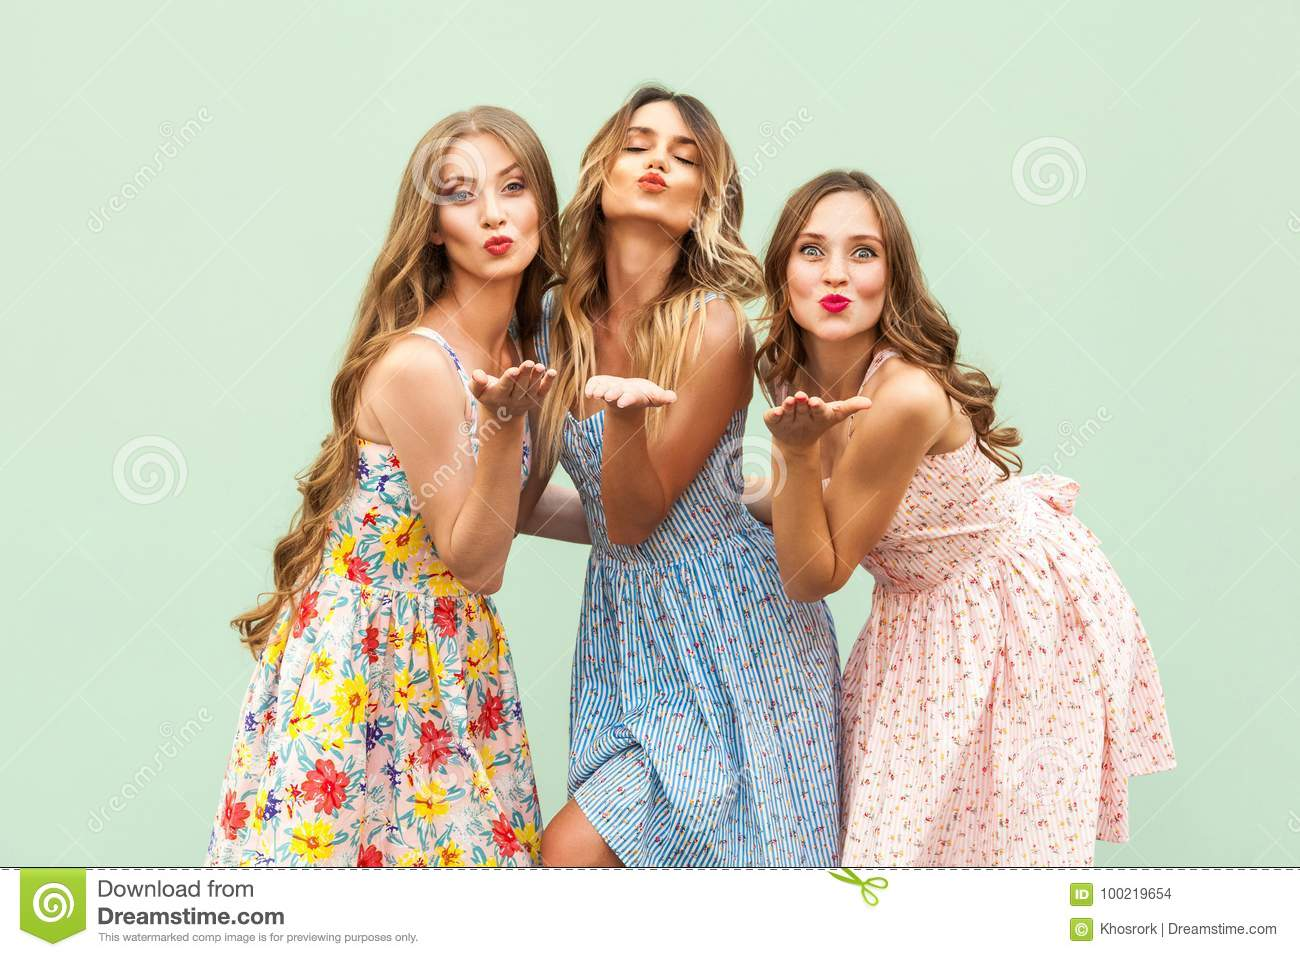 4 102 Three Best Friends Photos Free Royalty Free Stock Photos From Dreamstime